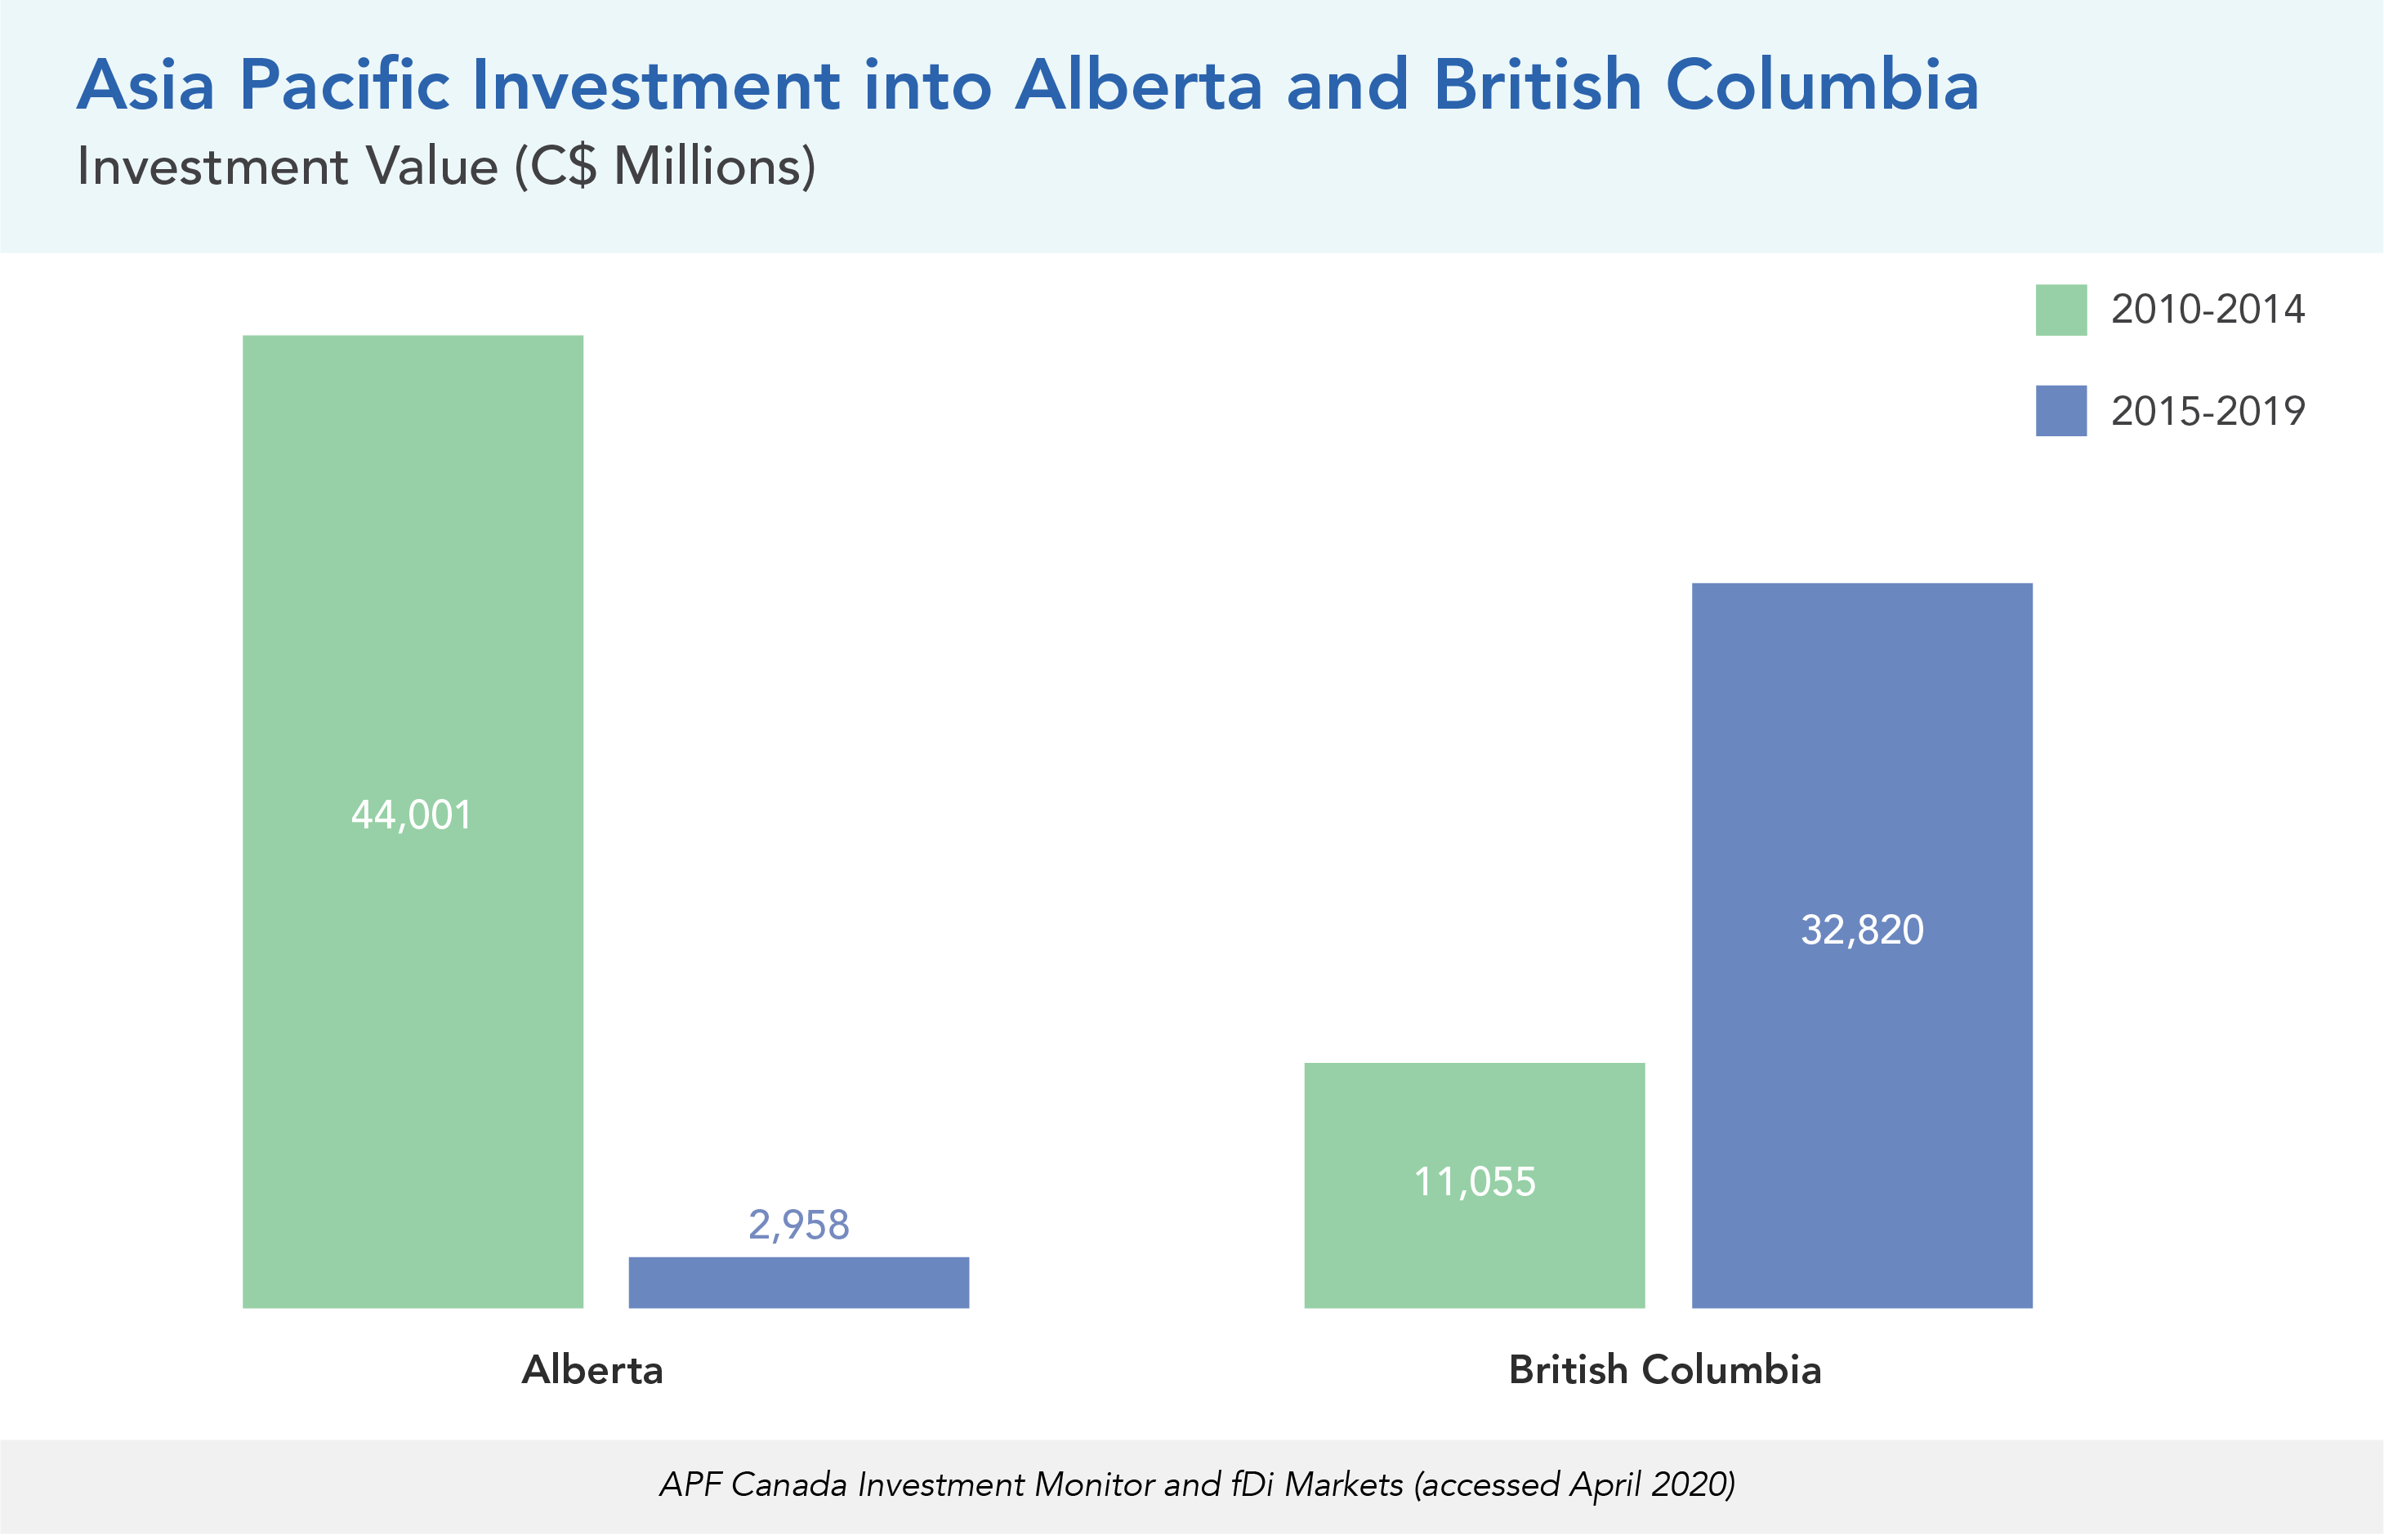 Asia Pacific Investment into Alberta and British Columbia